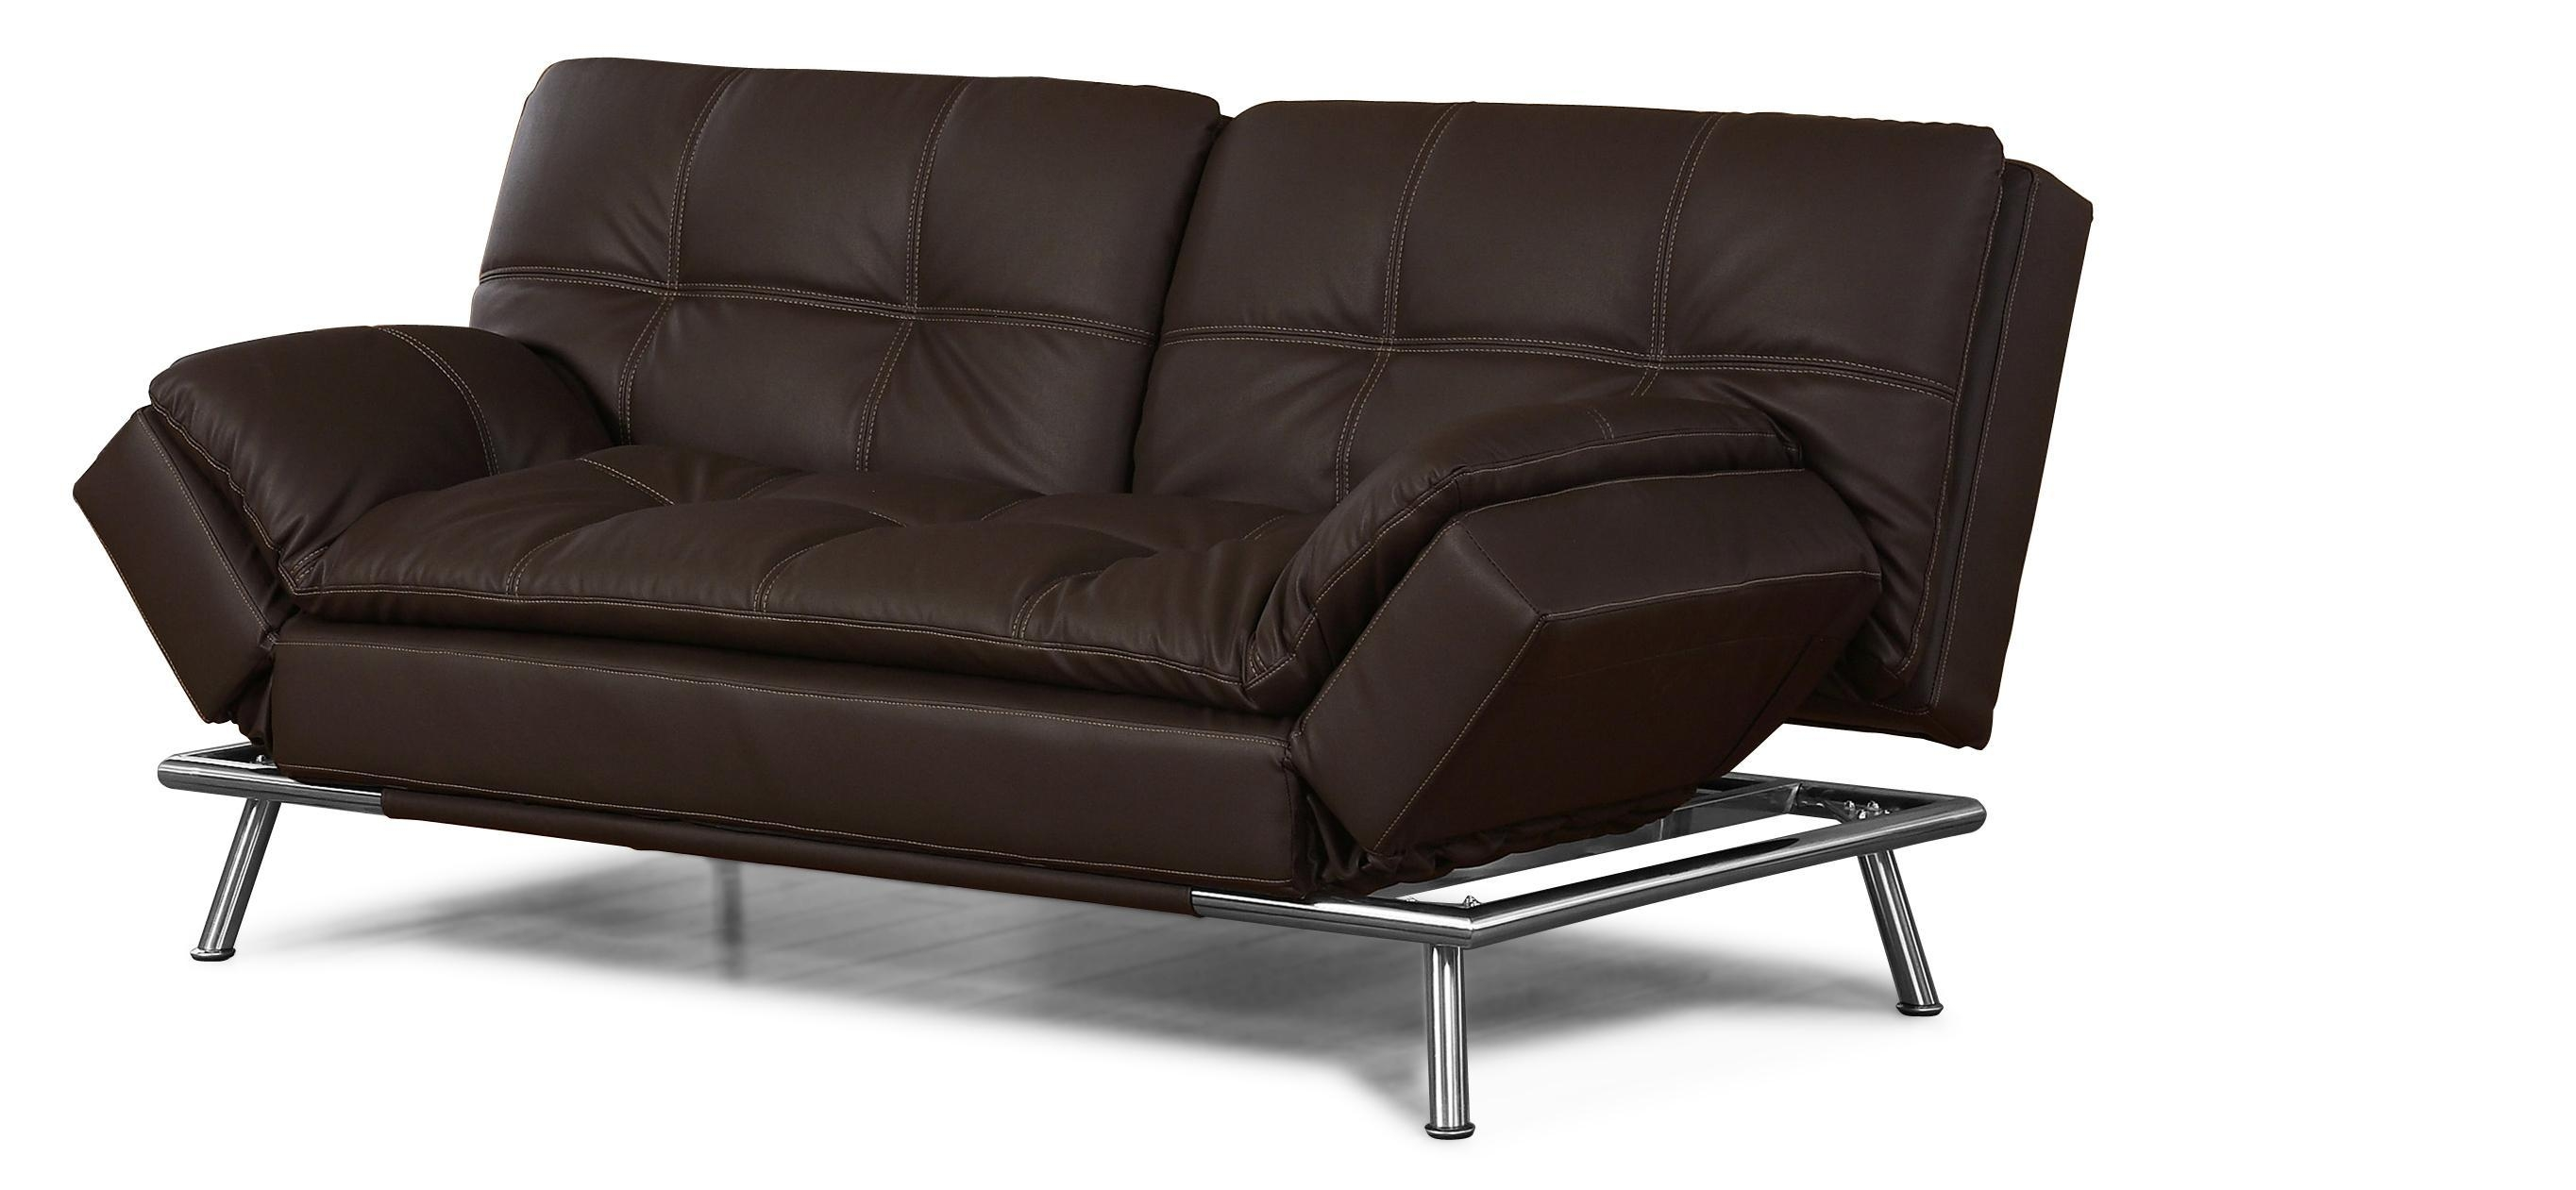 Sofas Center : Costco Futon Beds Roselawnlutheran Lifestyle Pertaining To Euro Loungers (View 11 of 20)